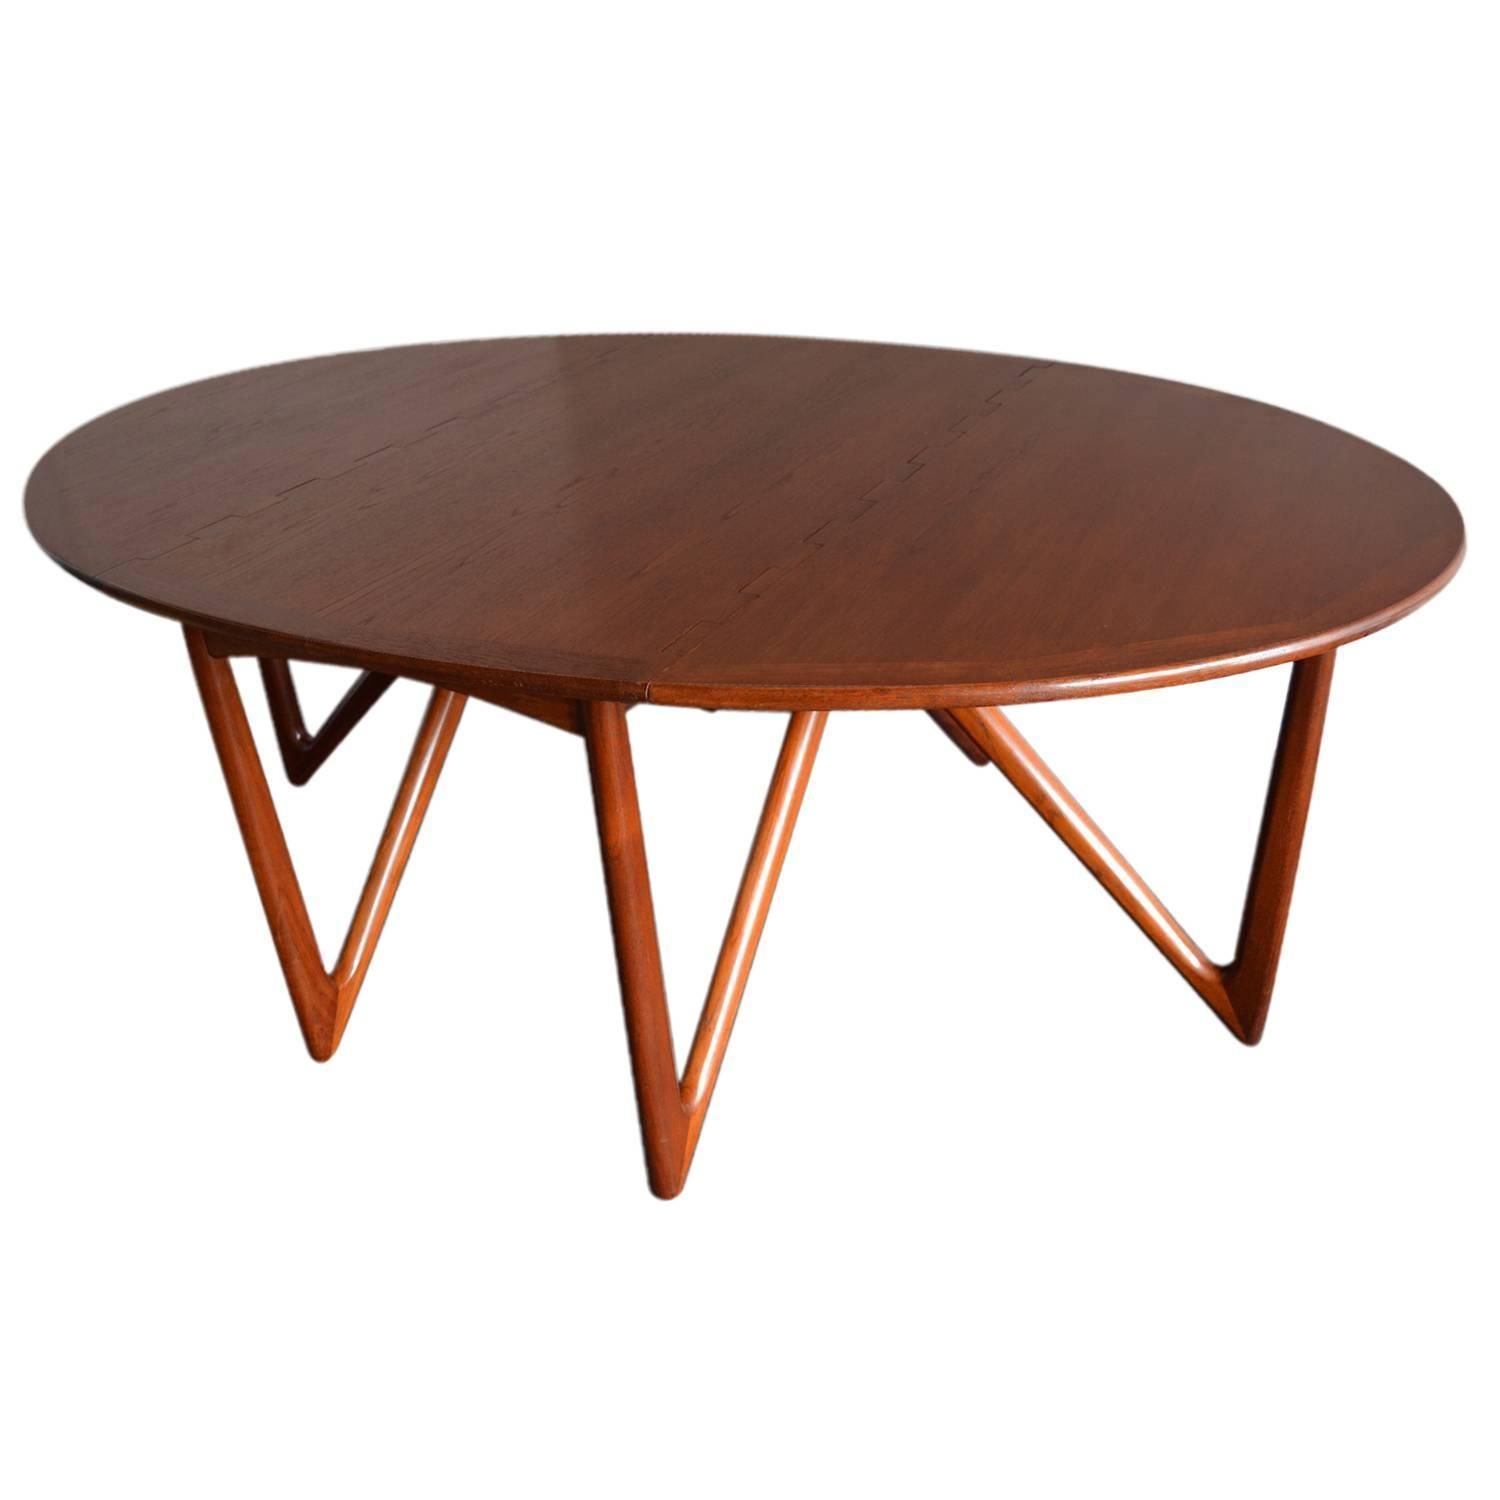 Kurt stervig niels kofoed drop leaf teak oval dining for Dining room tables drop leaf